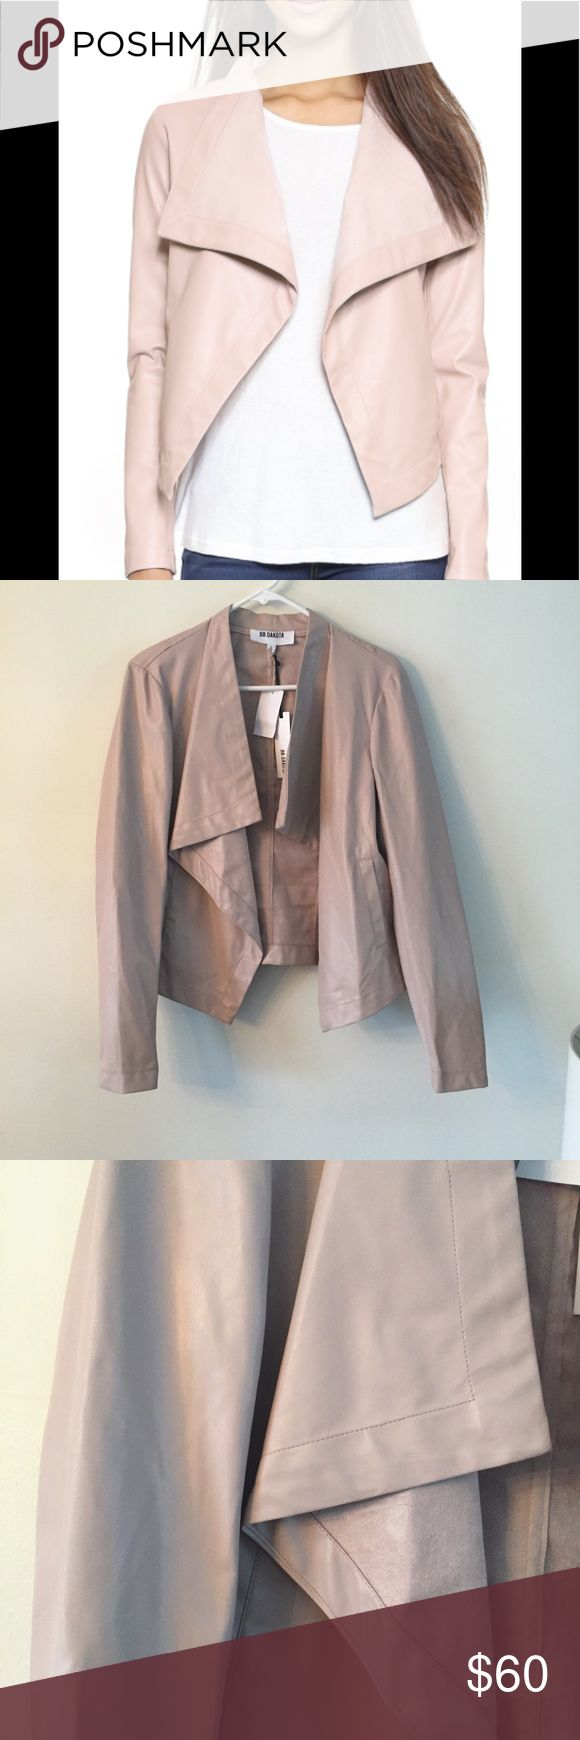 BB Dakota Drapery Front Jacket Size L Soft faux leather composes this BB Dakota jacket. A draped open placket creates an undone feel, and fitted sleeves lend a chic finish. Welt front pockets. Unlined. BB Dakota Jackets & Coats